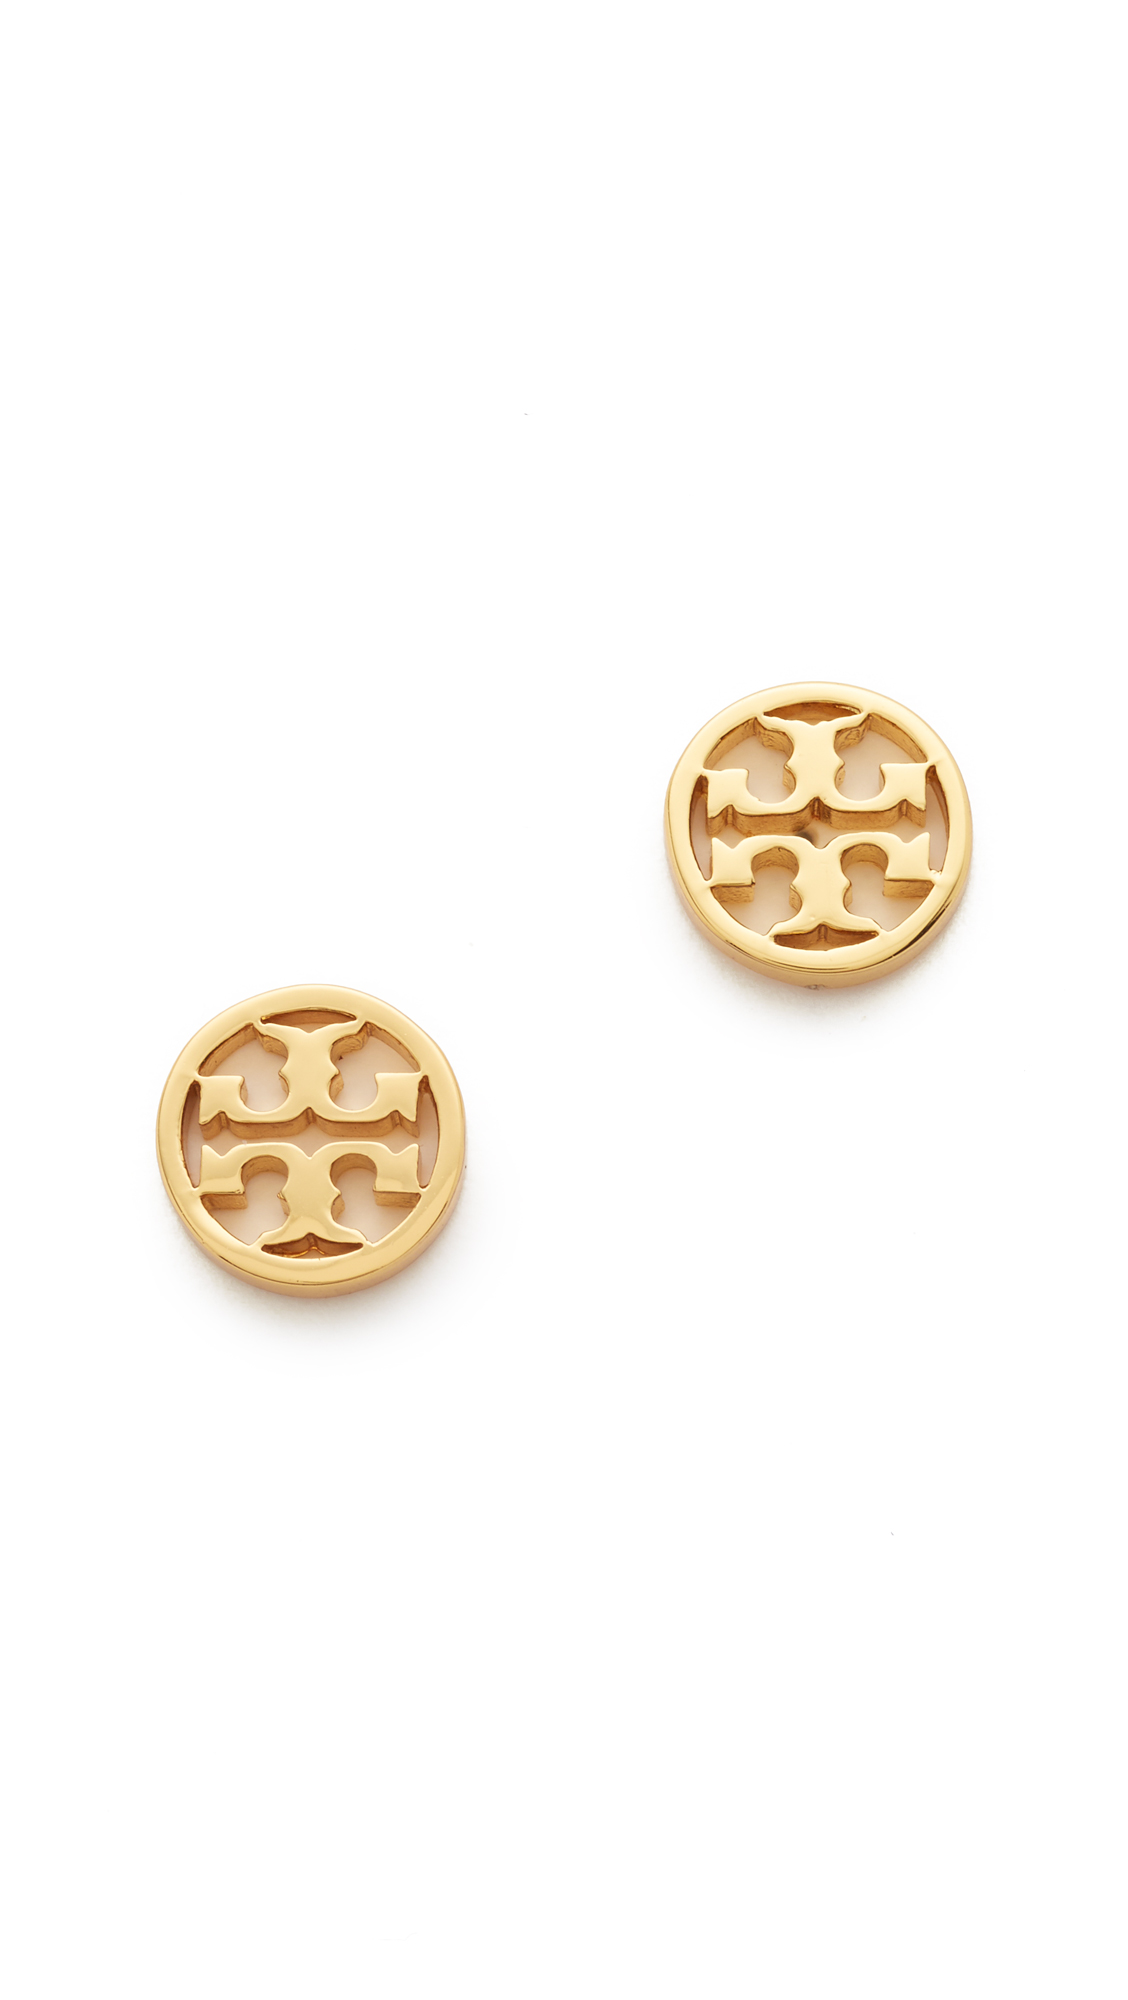 토리버치 로고 서클 귀걸이 Tory Burch Logo Circle Stud Earrings